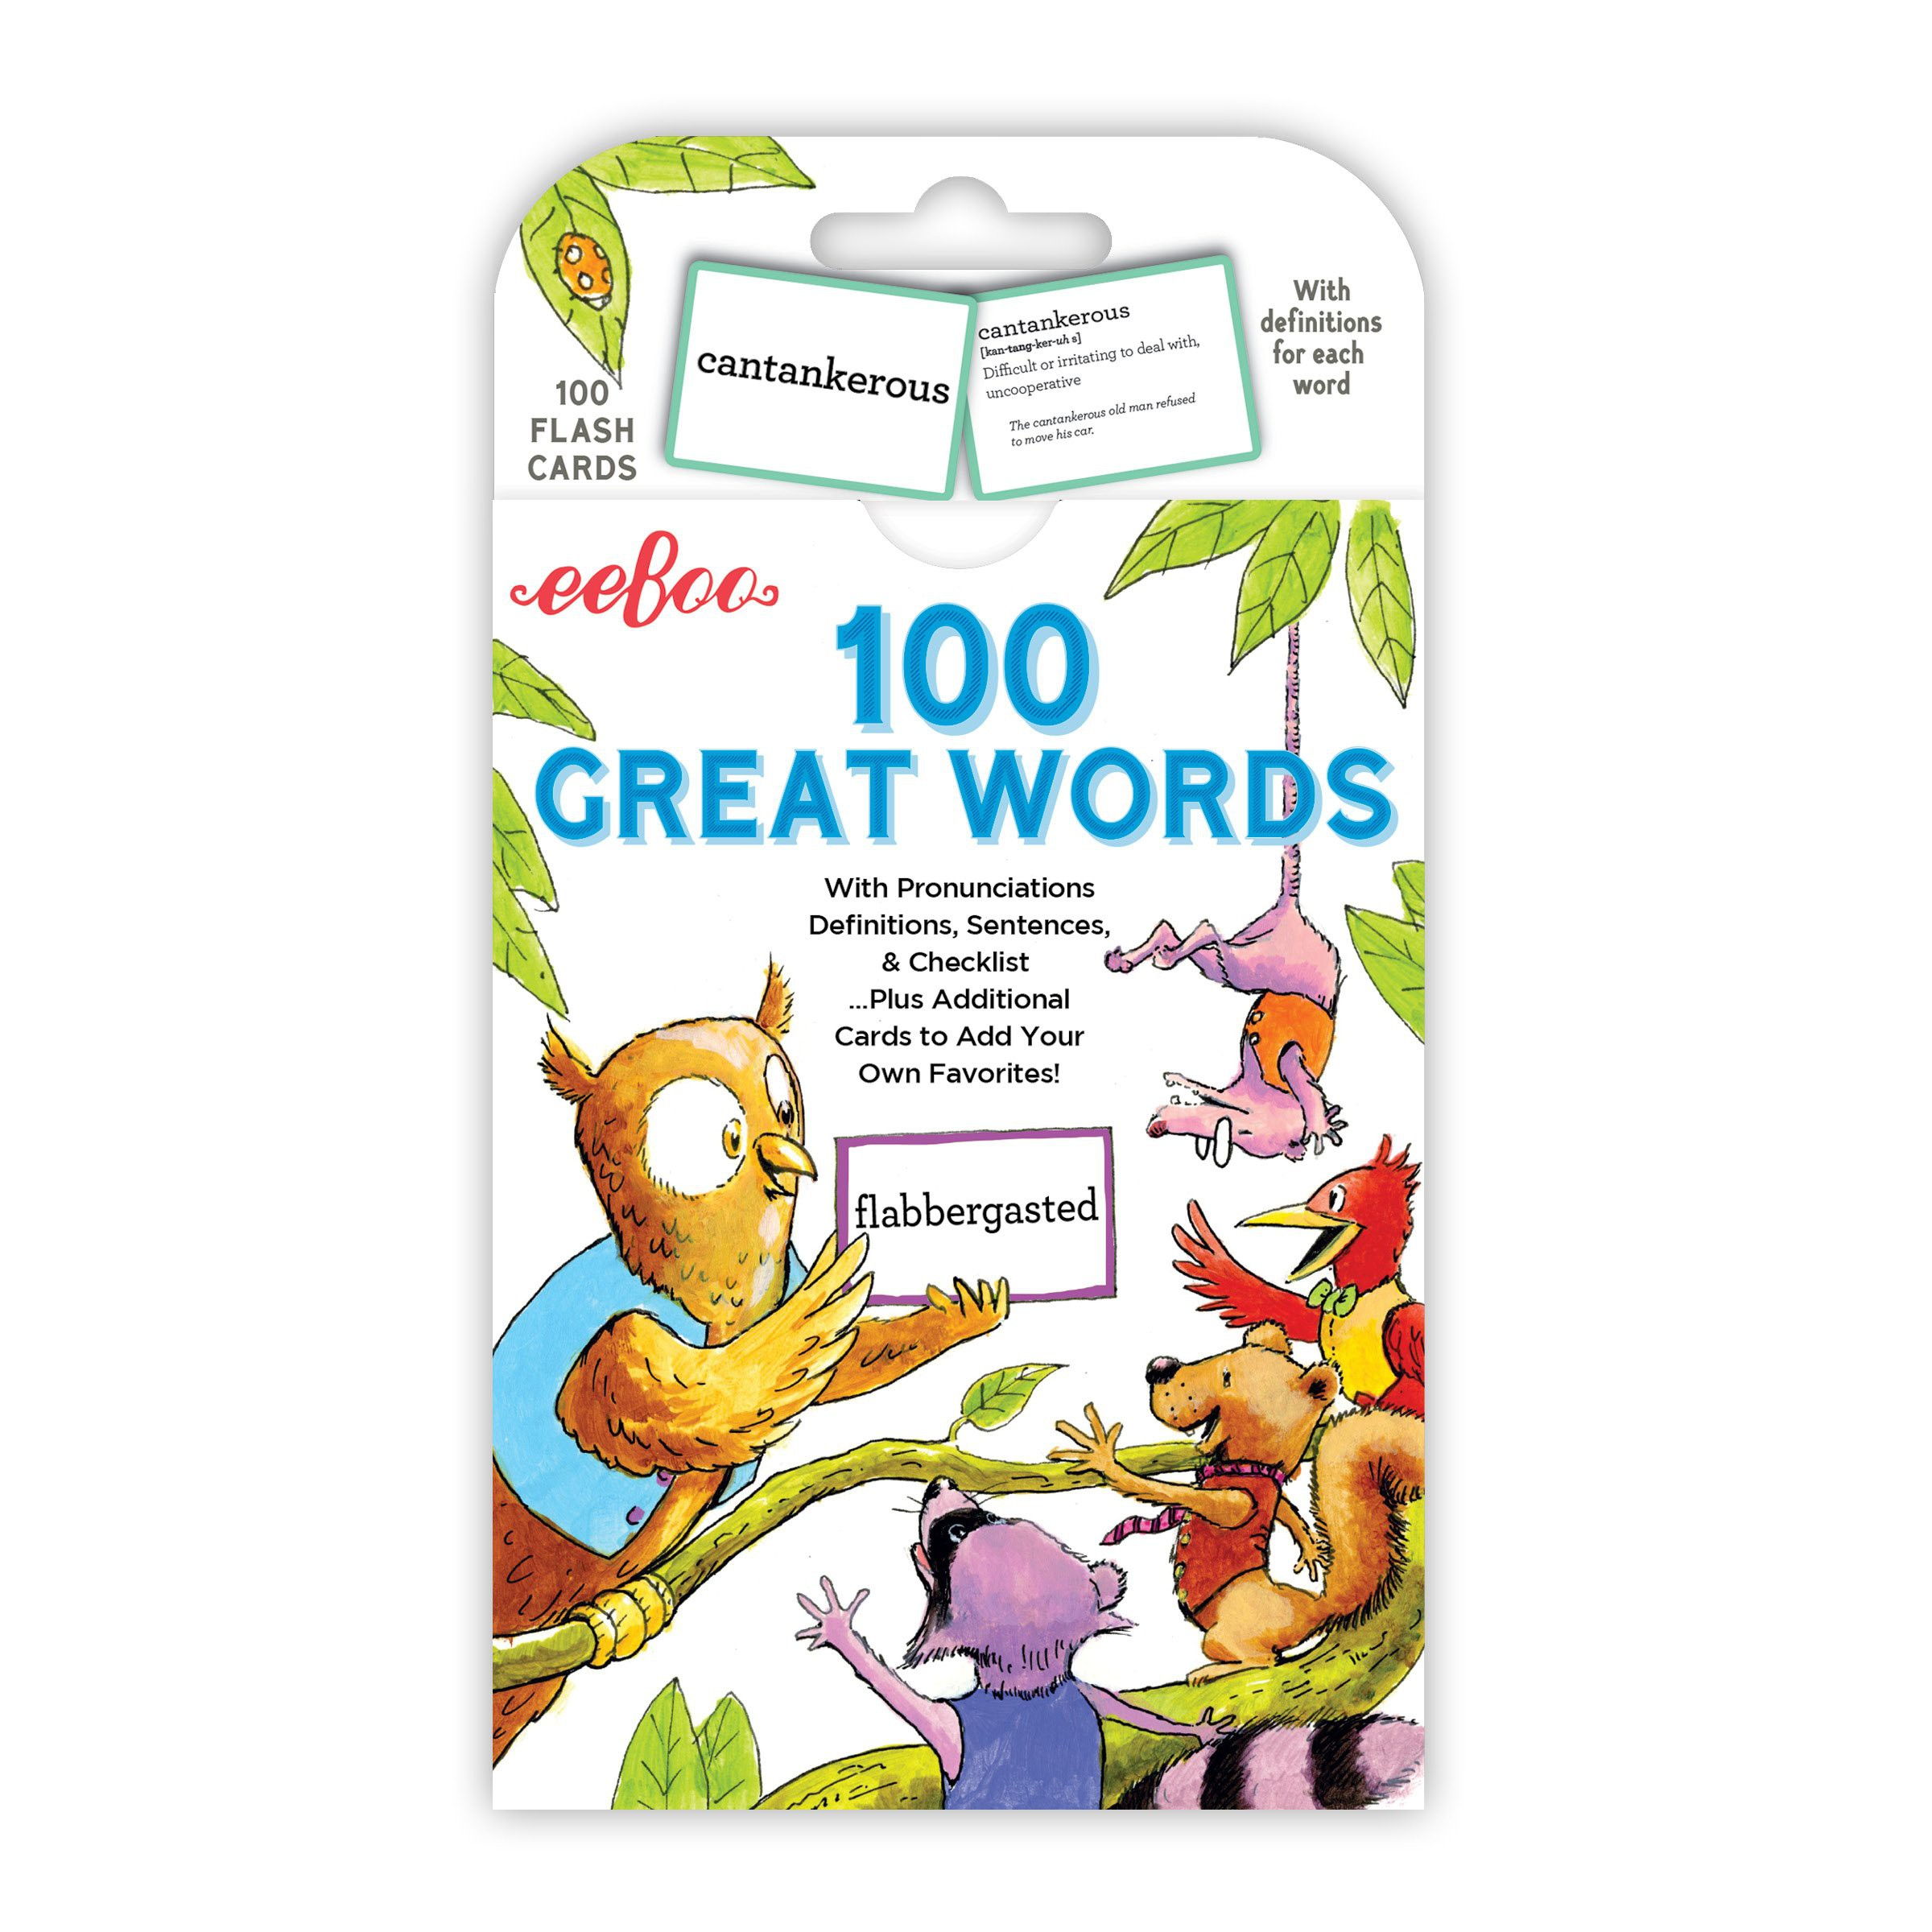 100 Great Words Flash Cards from eeBoo